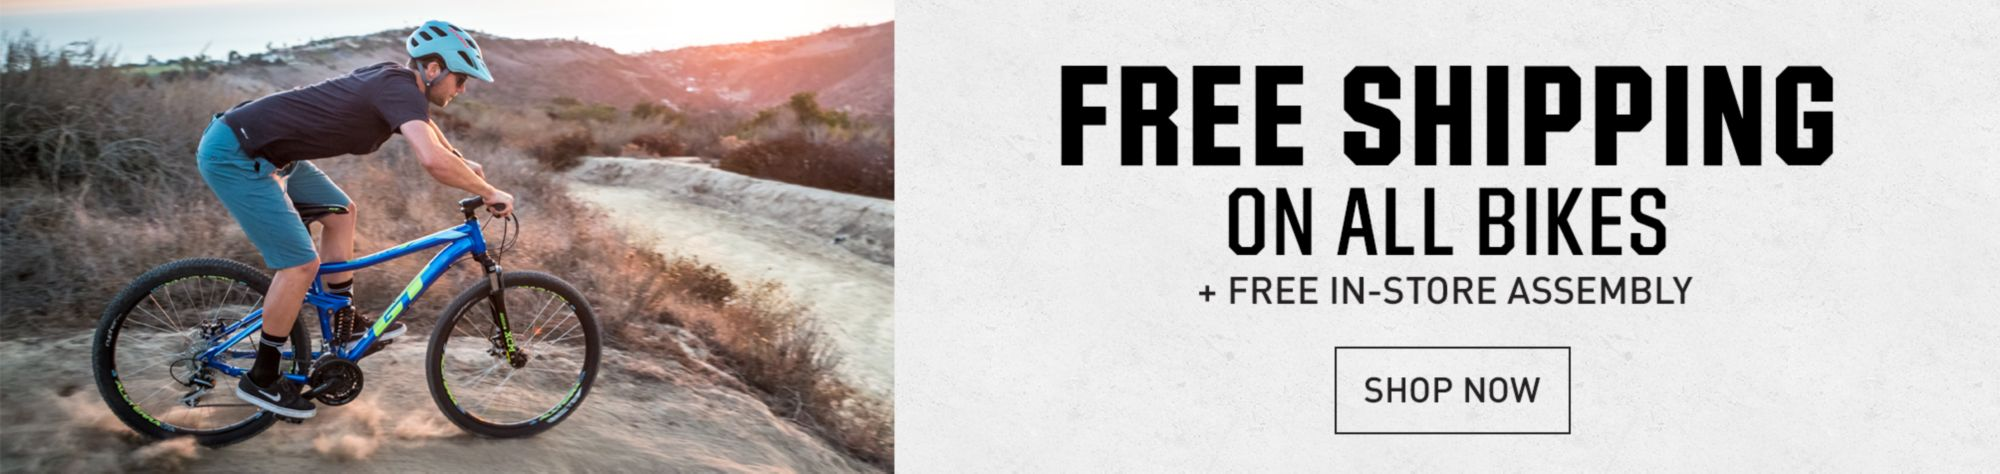 Free Shipping on All Bikes + Free In-store assembly - Shop Now